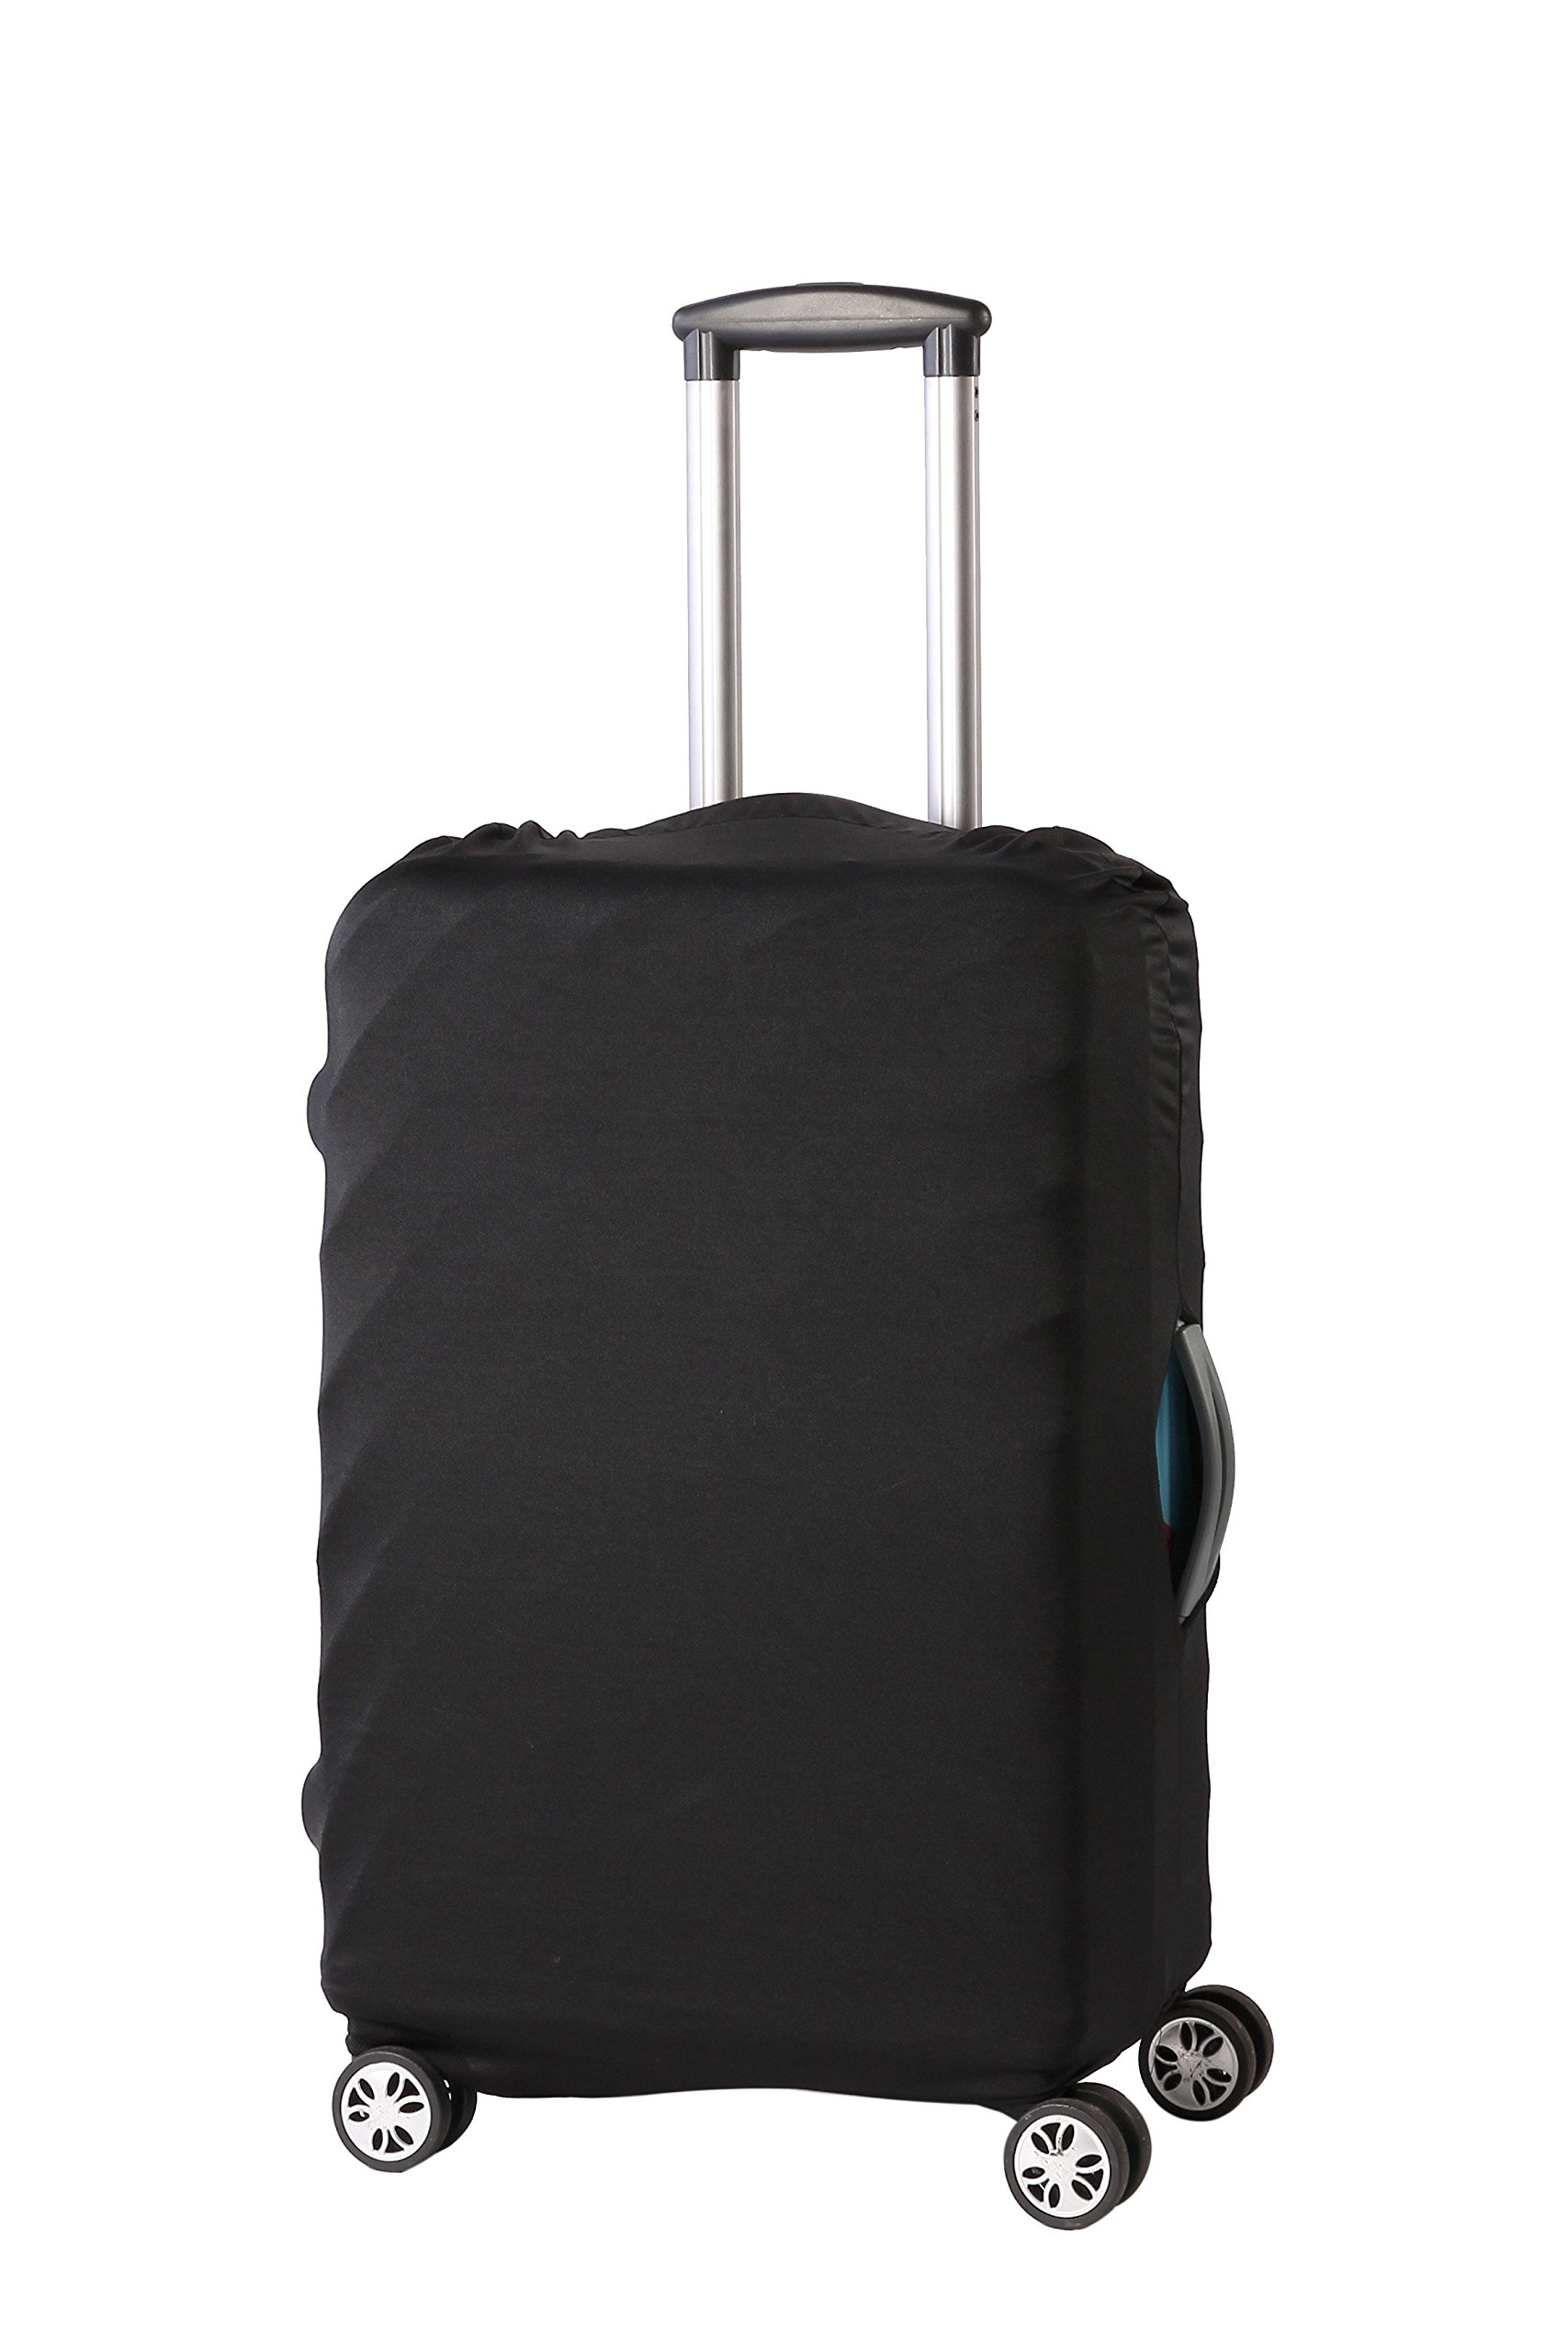 Travel Luggage Protective Cover - Stretchable Suitcase Protector Case, Black, 26 Inches